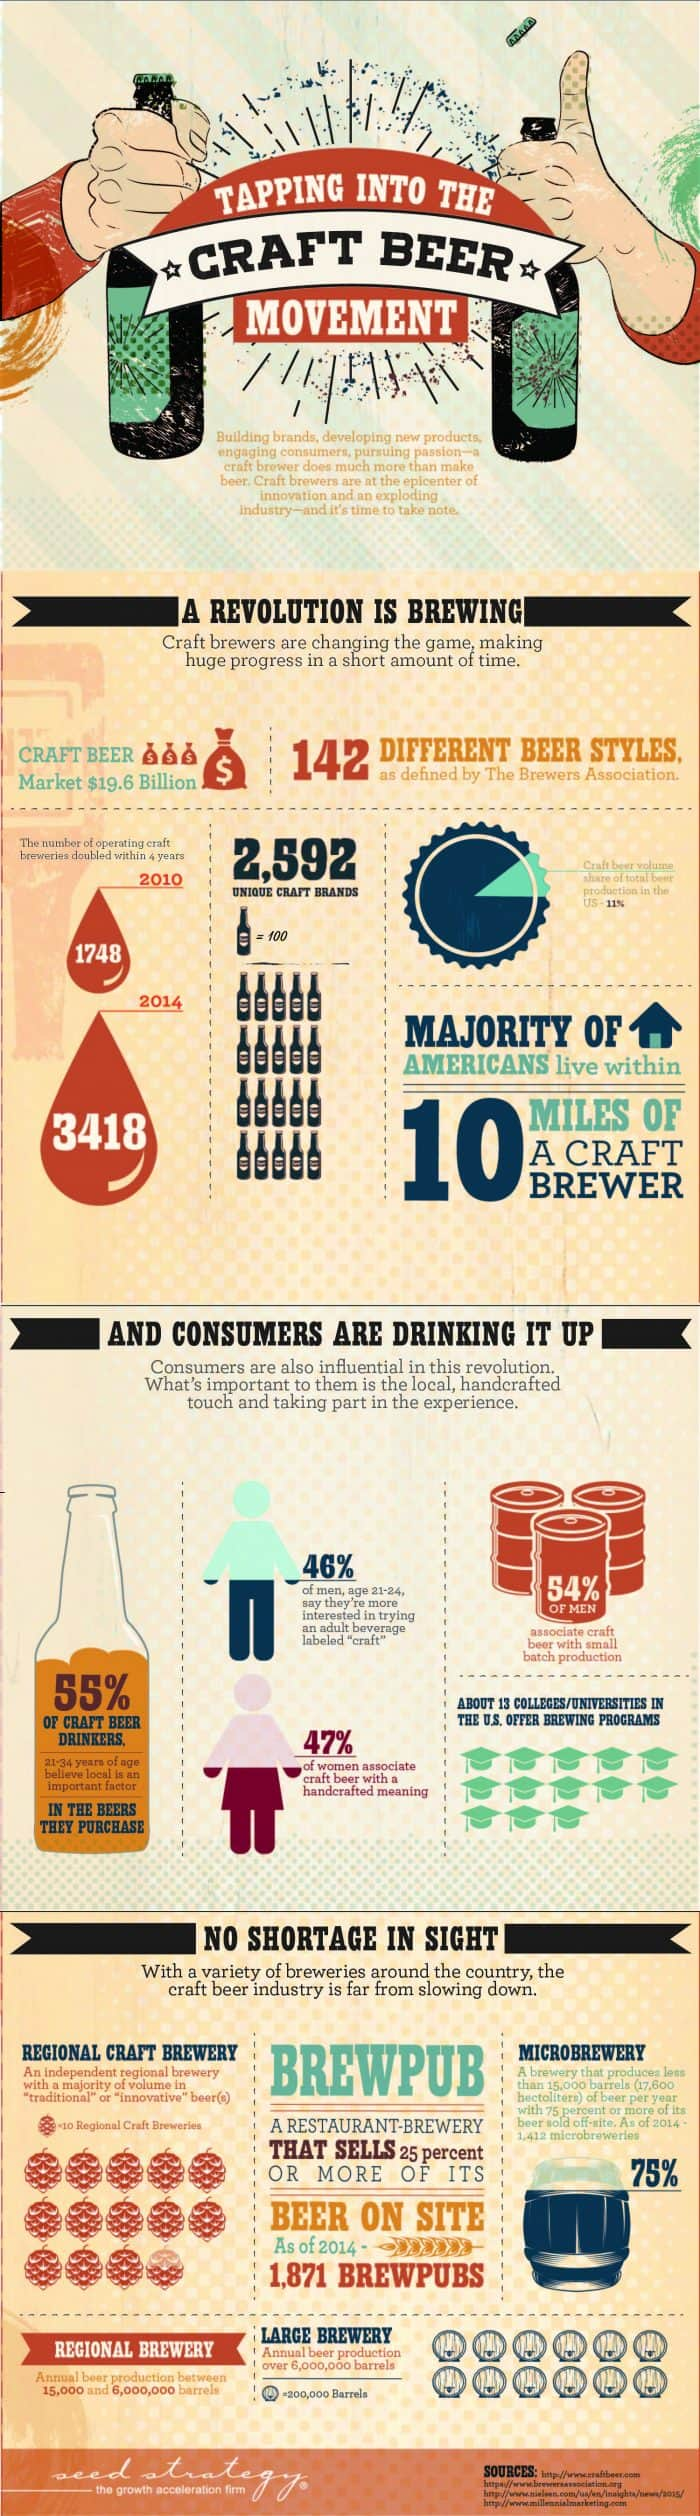 Tapping Into The Craft Beer Movement Infographic